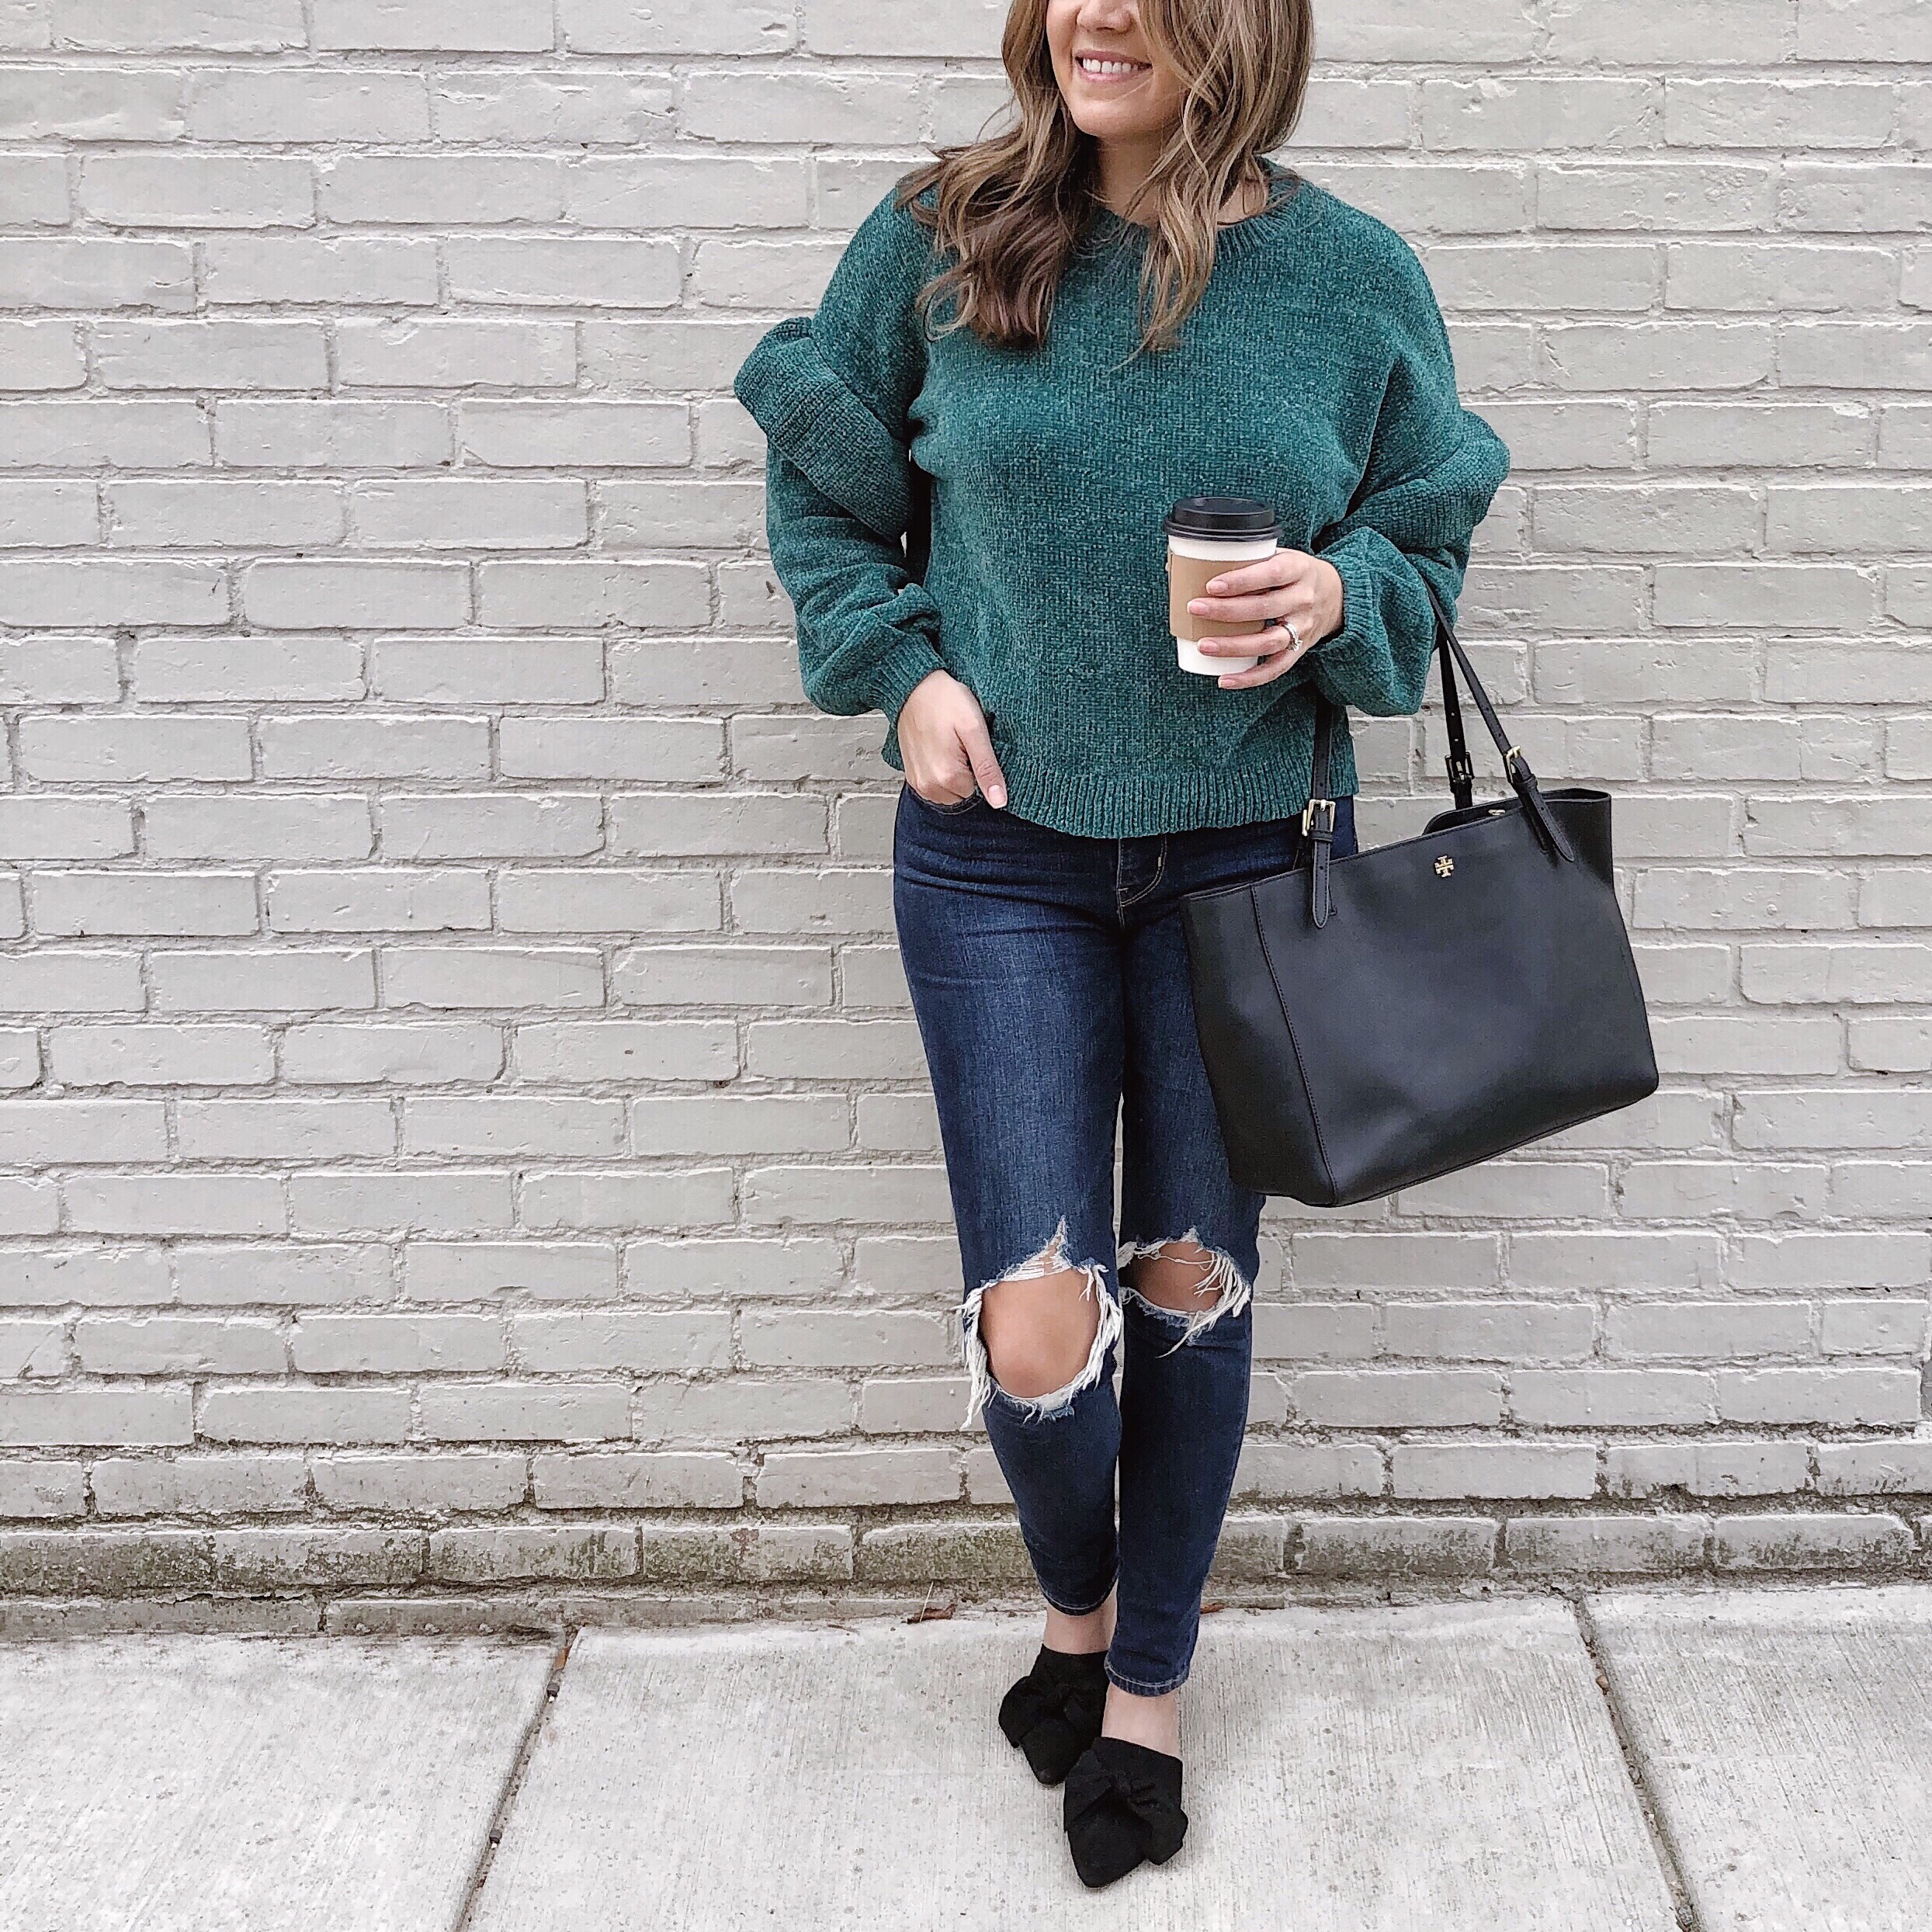 fall busted knee jeans outfit - how wear chenille sweater | bylaurenm.com